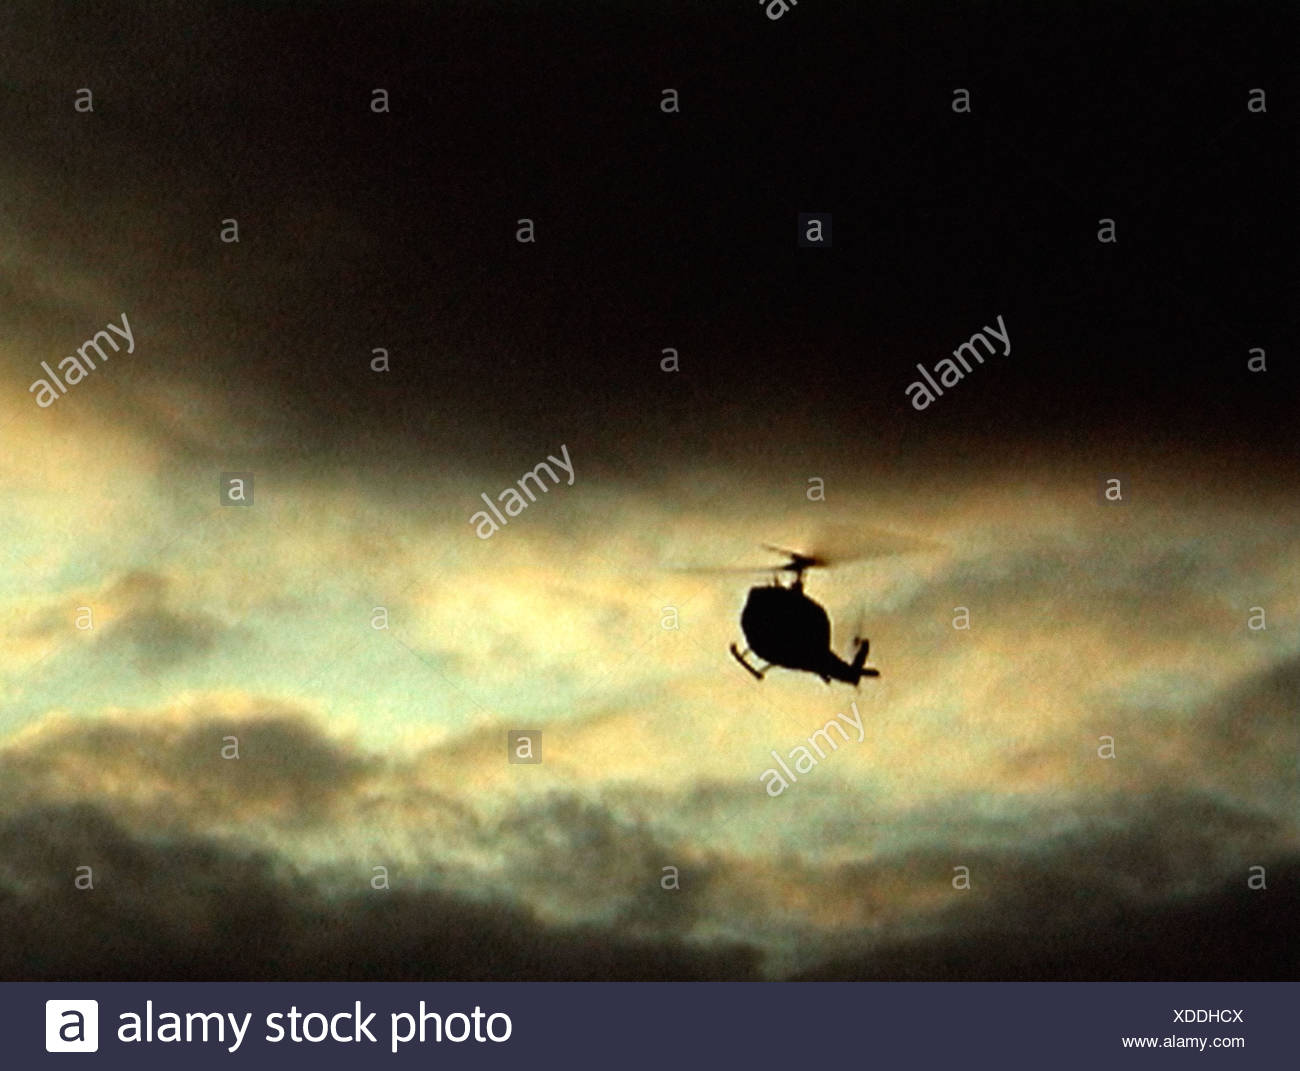 Helicopter in cloudy sky - Stock Image